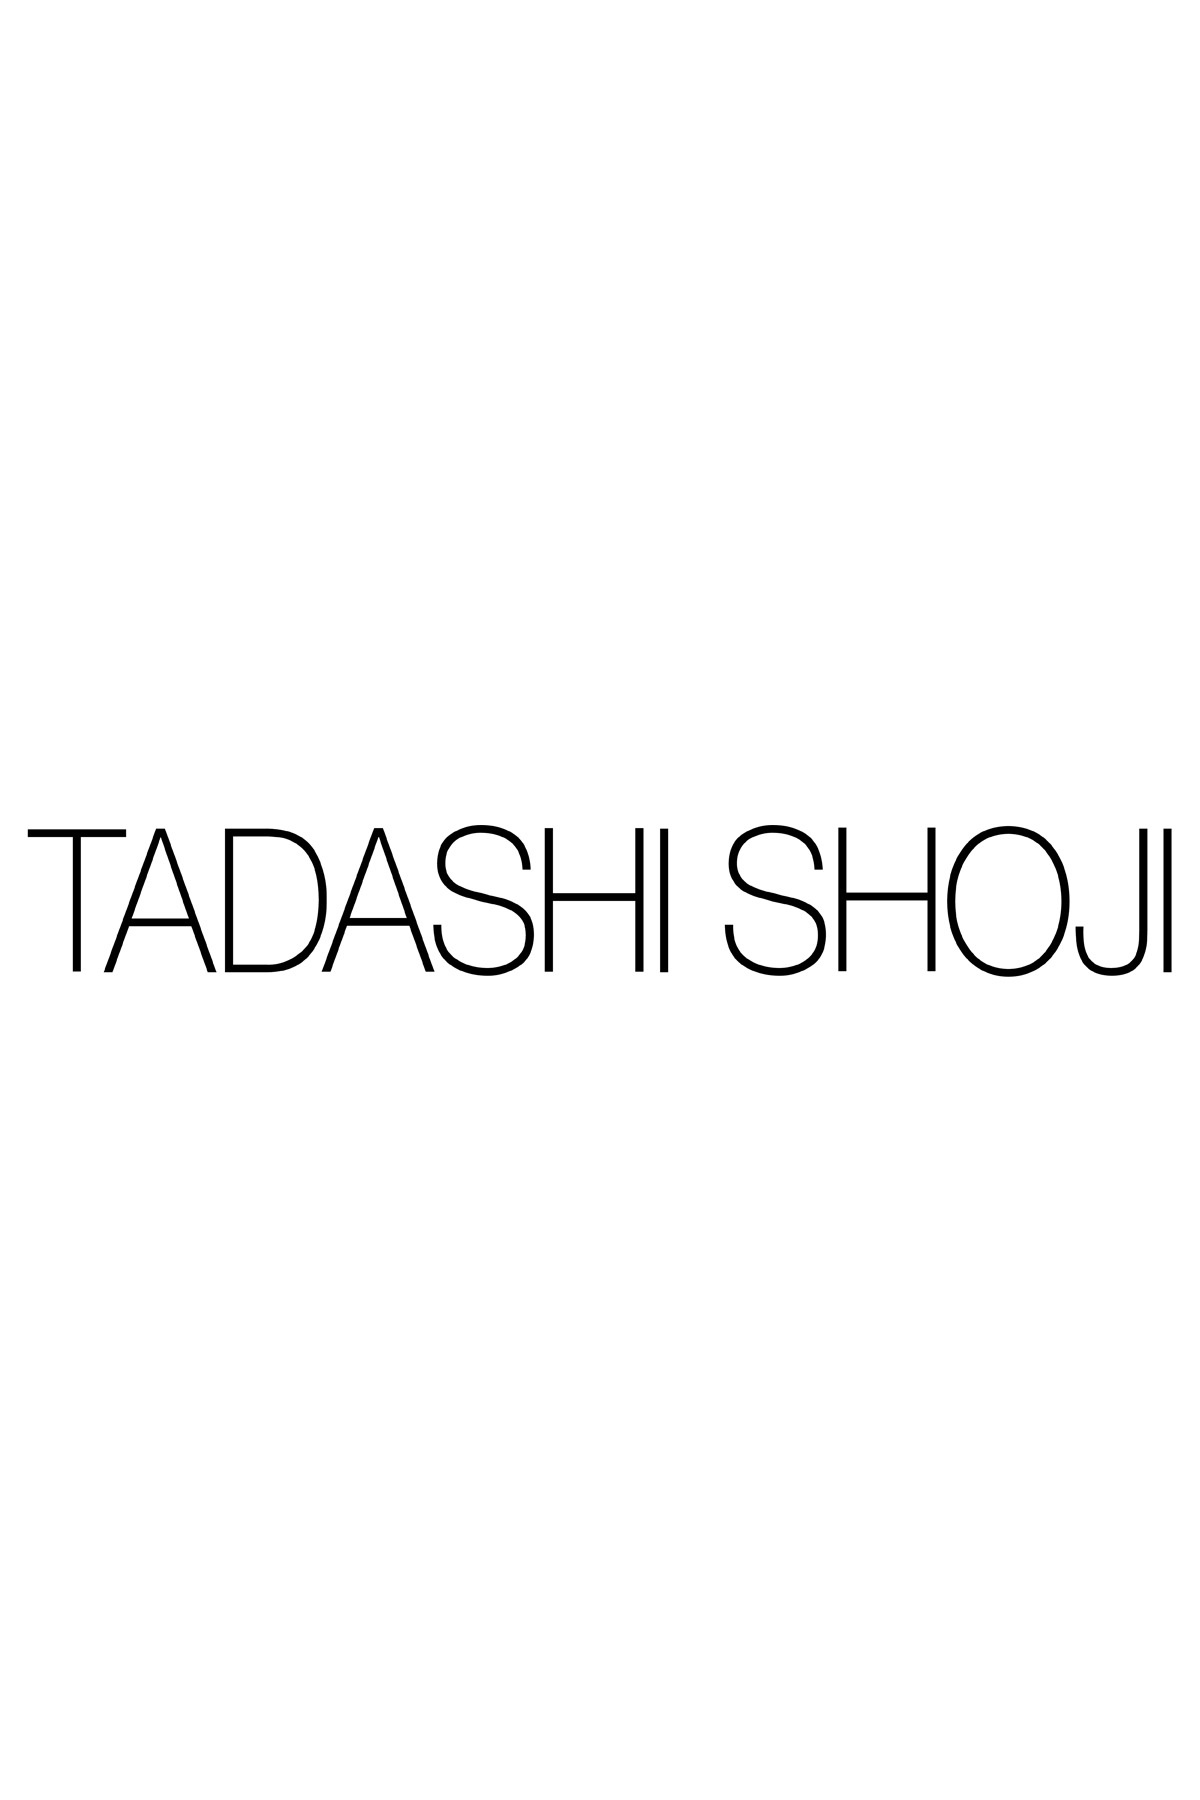 Tadashi Shoji - Corded Embroidery on Tulle Dress with Sheer Illusion Neckline